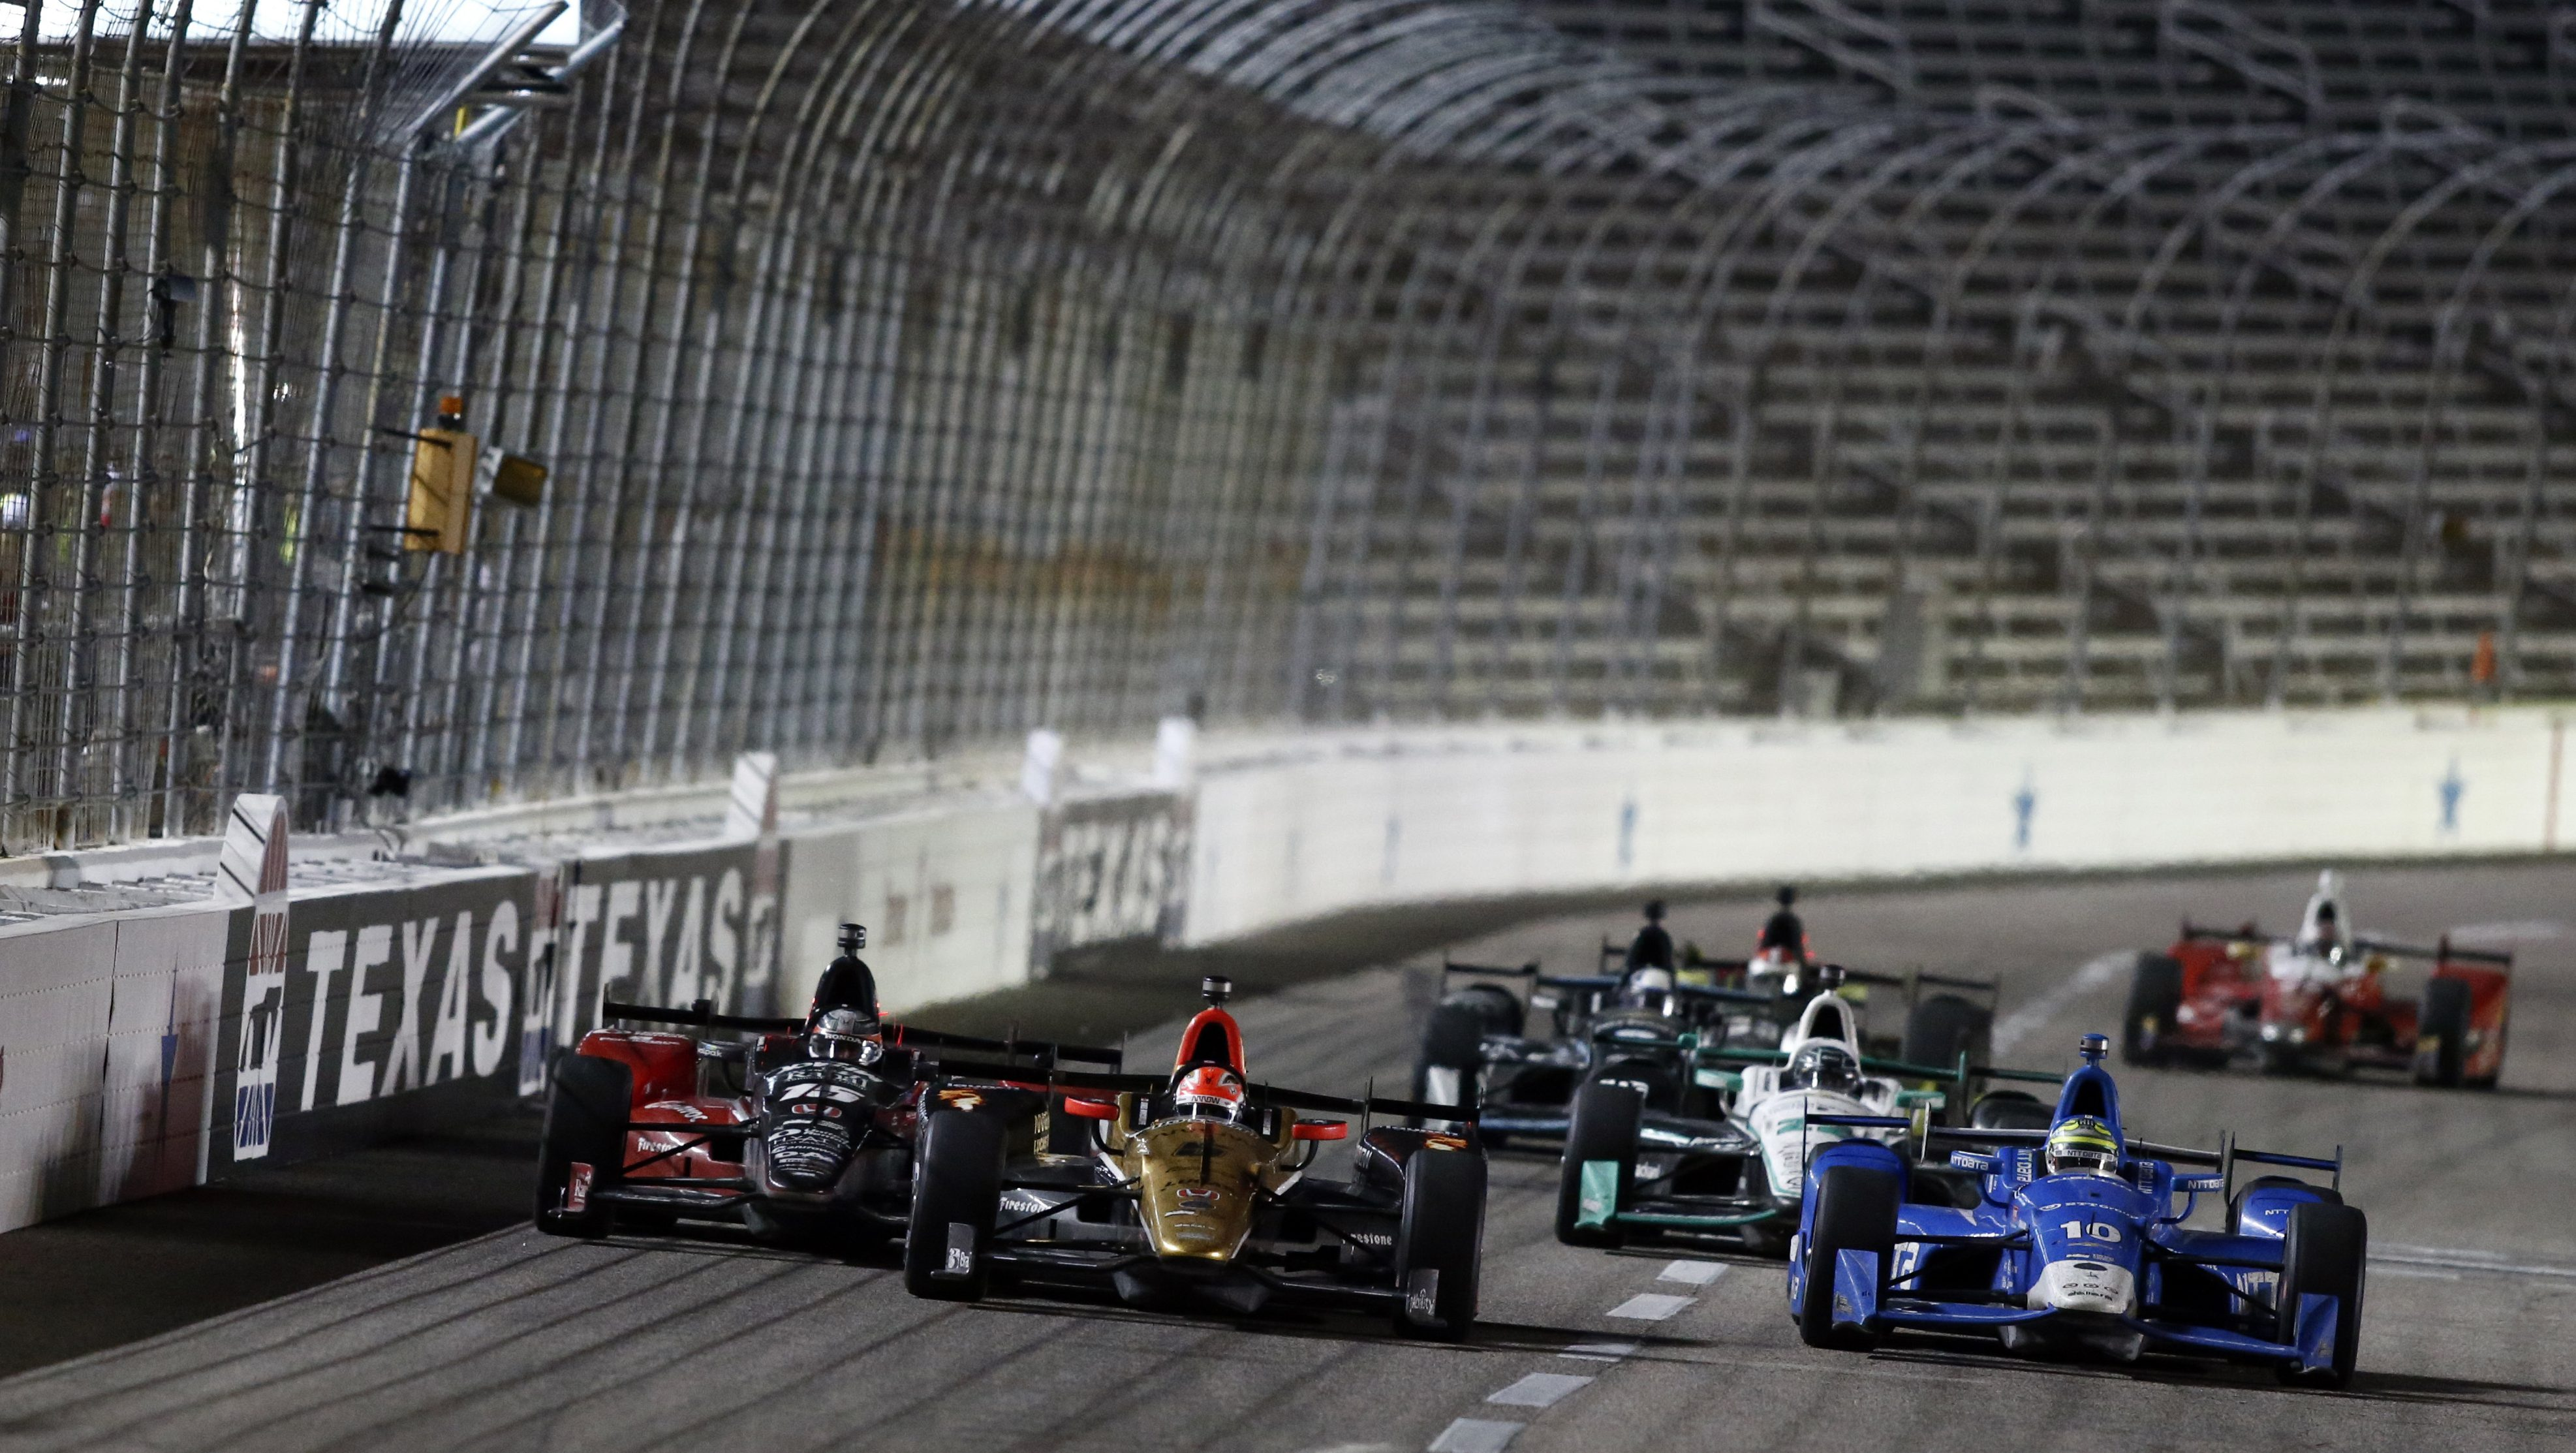 FORT WORTH, TX - AUGUST 27: James Hinchcliffe driver of the #5 Arrow Schmidt Peterson Motorsports Honda leads Tony Kanaan driver of the #10 NTT Data Chevrolet and Graham Rahal driver of the #15 Mi-Jack/RLL Honda going into the final lap during the Verizon IndyCar Series Firestone 600 at Texas Motor Speedway on August 27, 2016 in Fort Worth, Texas. (Photo by Mike Stone/Getty Images for Texas Motor Speedway)